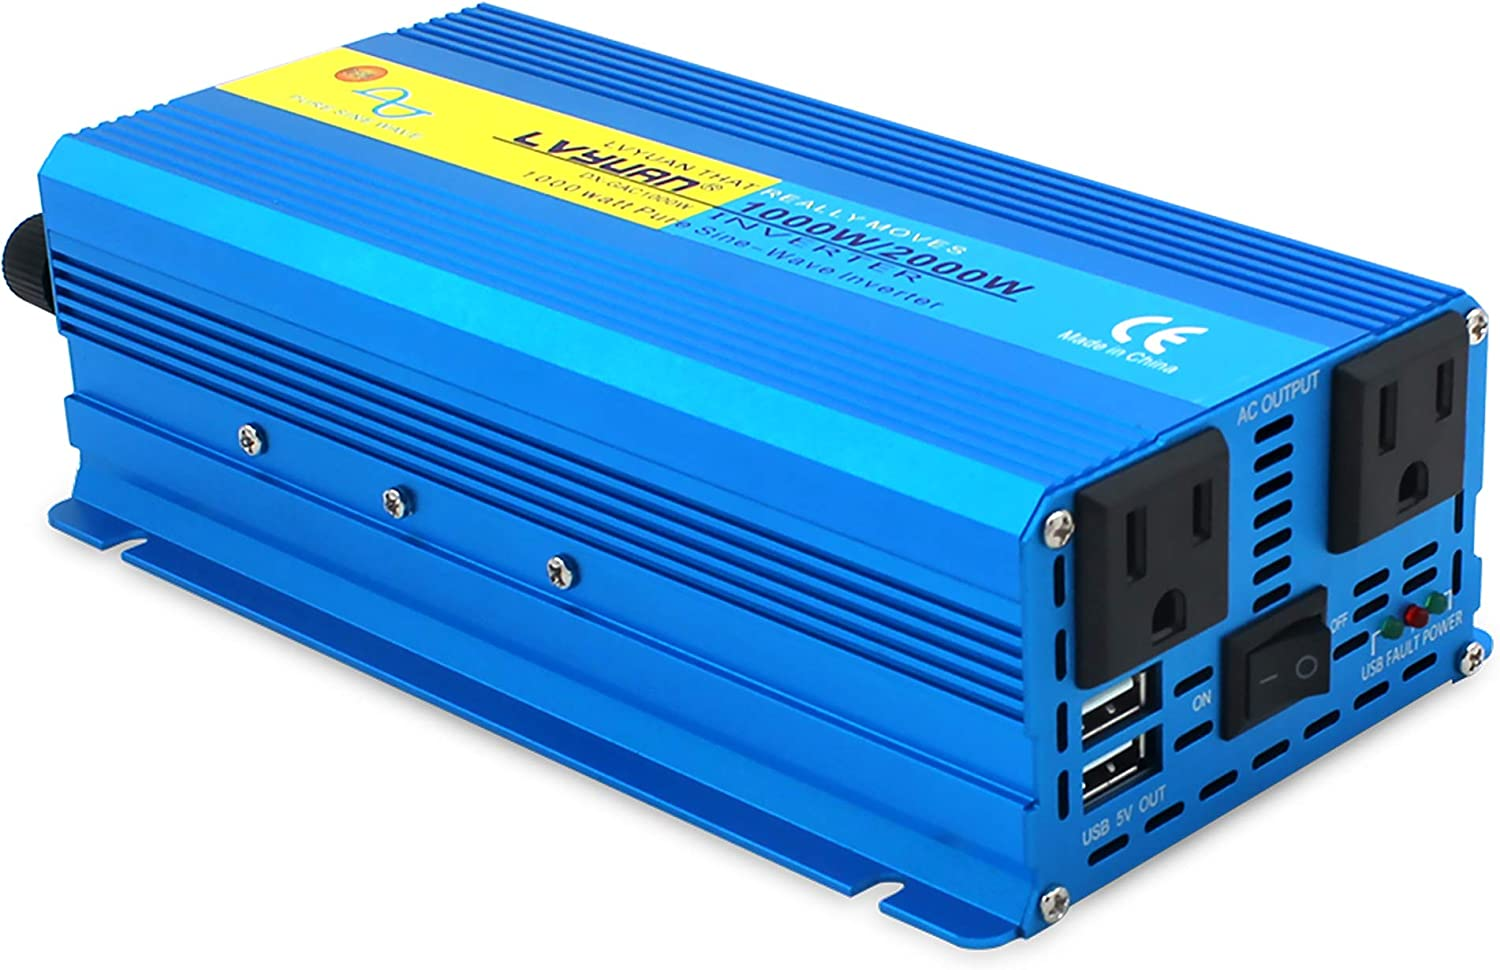 1000W Pure Sin Wave Power Inverter DC 12V to 110V AC Converter with Dual AC Outlets Comapct Size and Daul 3.1A USB Car Charger for Car Home Laptop